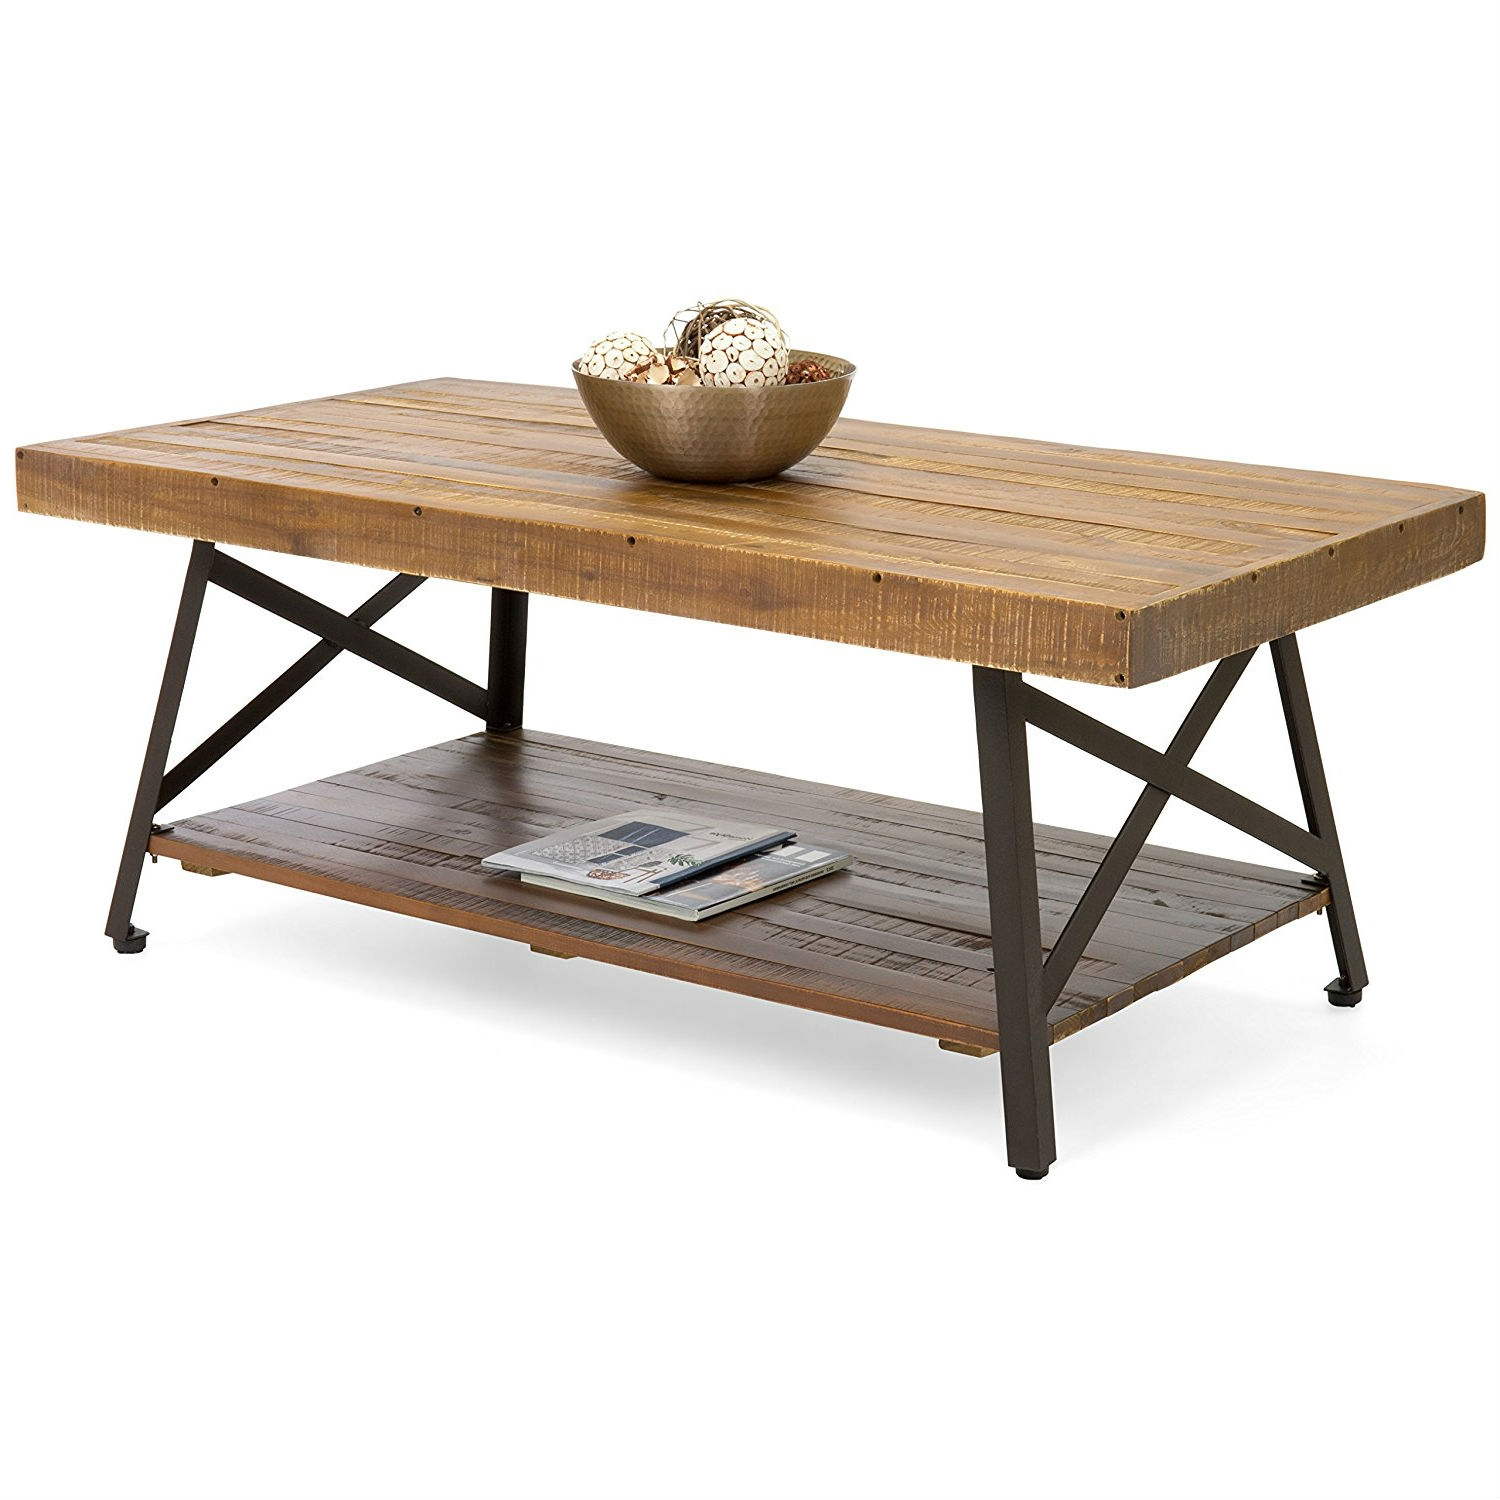 Outstanding Modern Classic Industrial Chic Reclaimed Wood And Metal Coffee Table Gamerscity Chair Design For Home Gamerscityorg